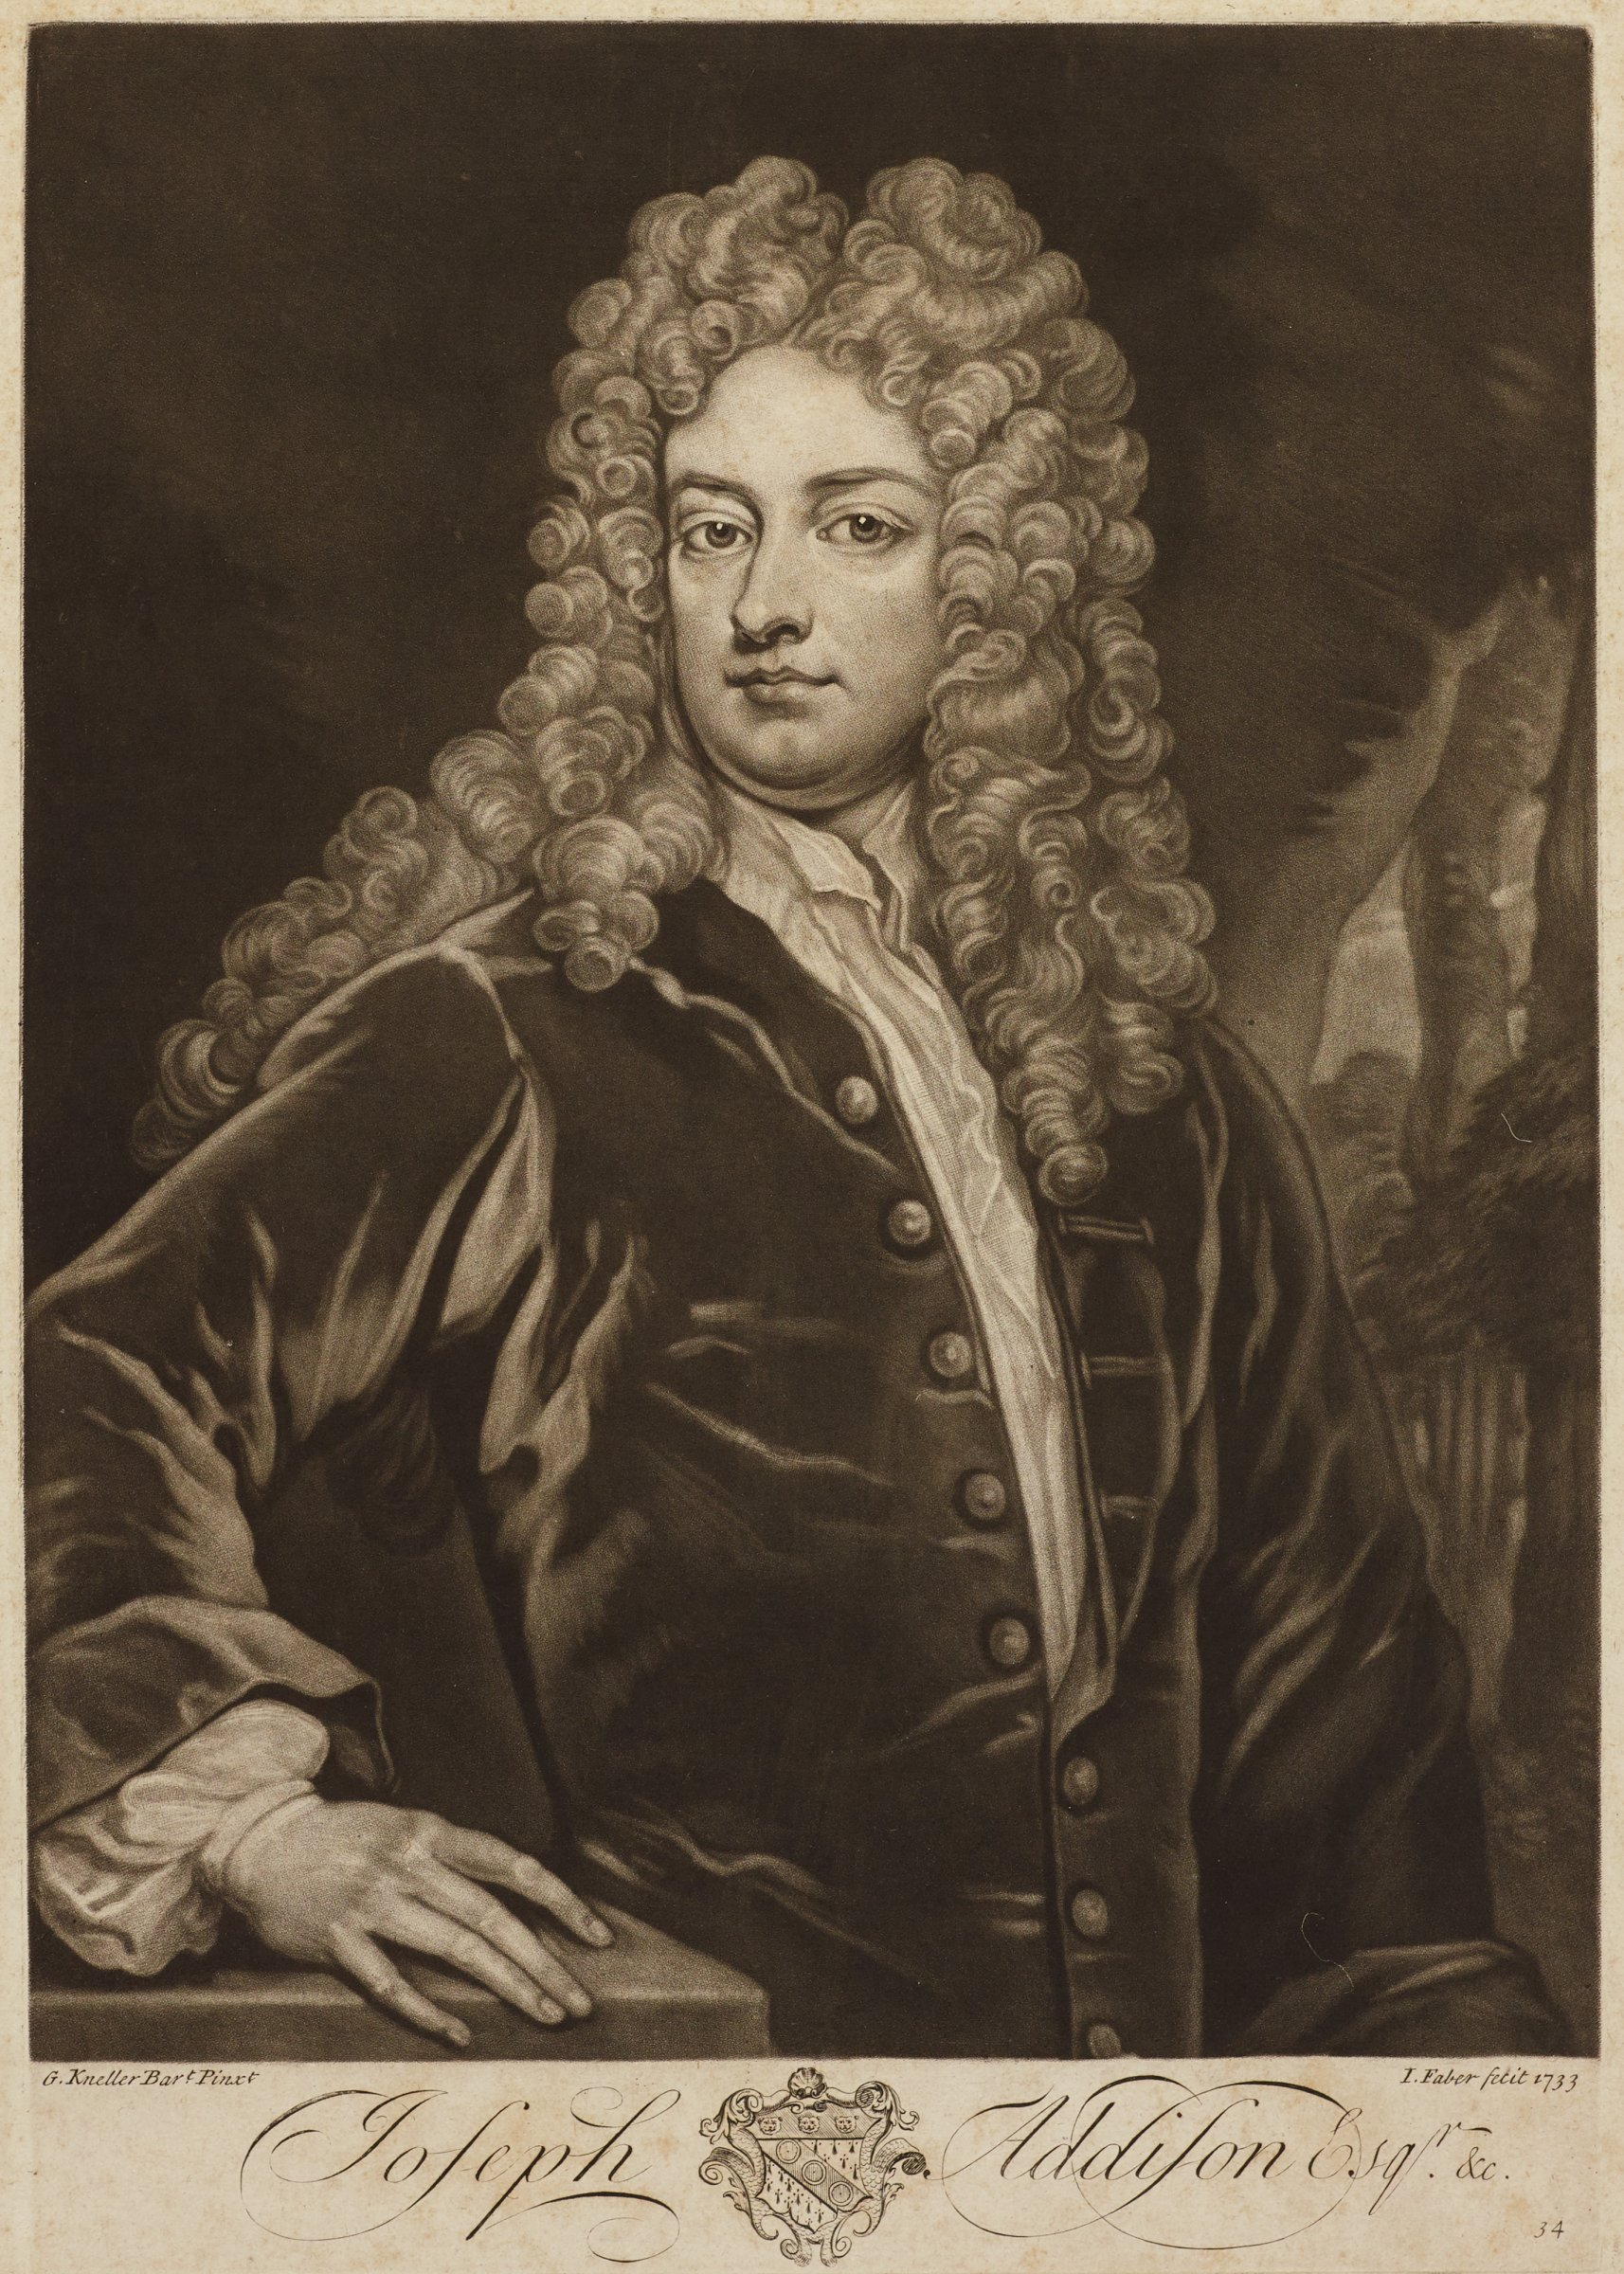 Half length portrait of Joseph Addison. He is portrayed with long curly hair wearing a jacket with horizontal embellishments and buttons along the center opening. He turns slightly to the right as he faces the viewer. Behind him on the right can be seen a narrow view of a landscape.